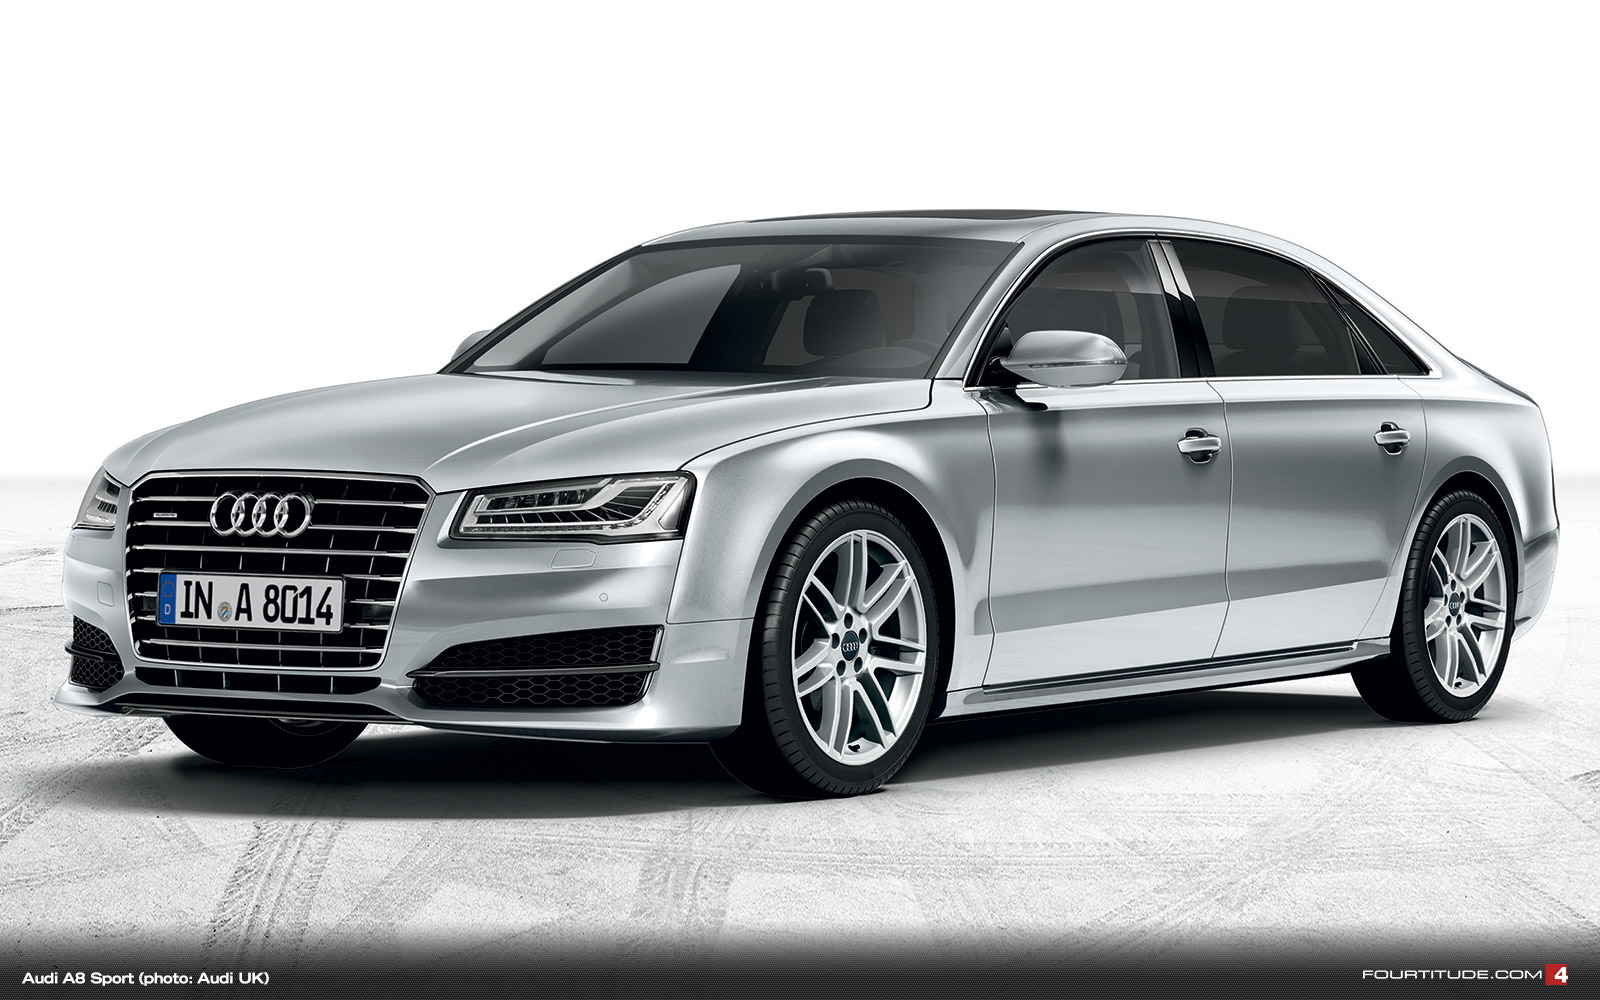 2016 Audi A8 iii (d4) - pictures, information and specs - Auto-Database.com